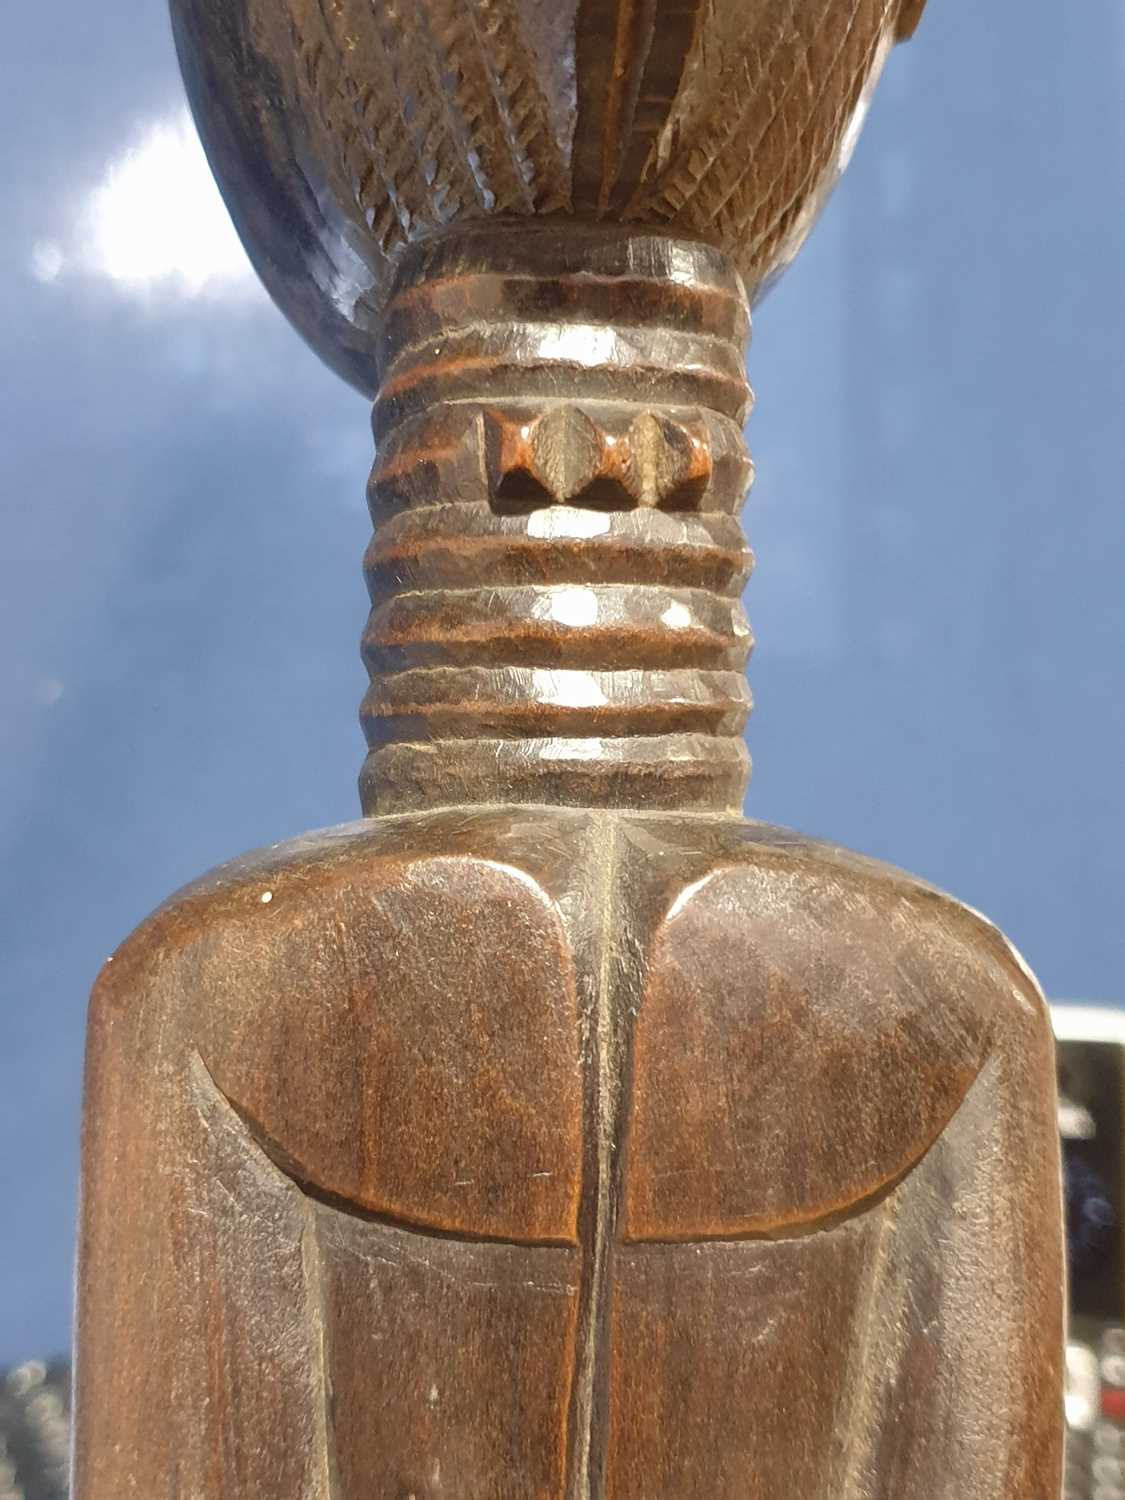 A Baule standing male figure, Blolo Bian, Ivory Coast, the coiffure with linear decoration, the face - Image 15 of 15